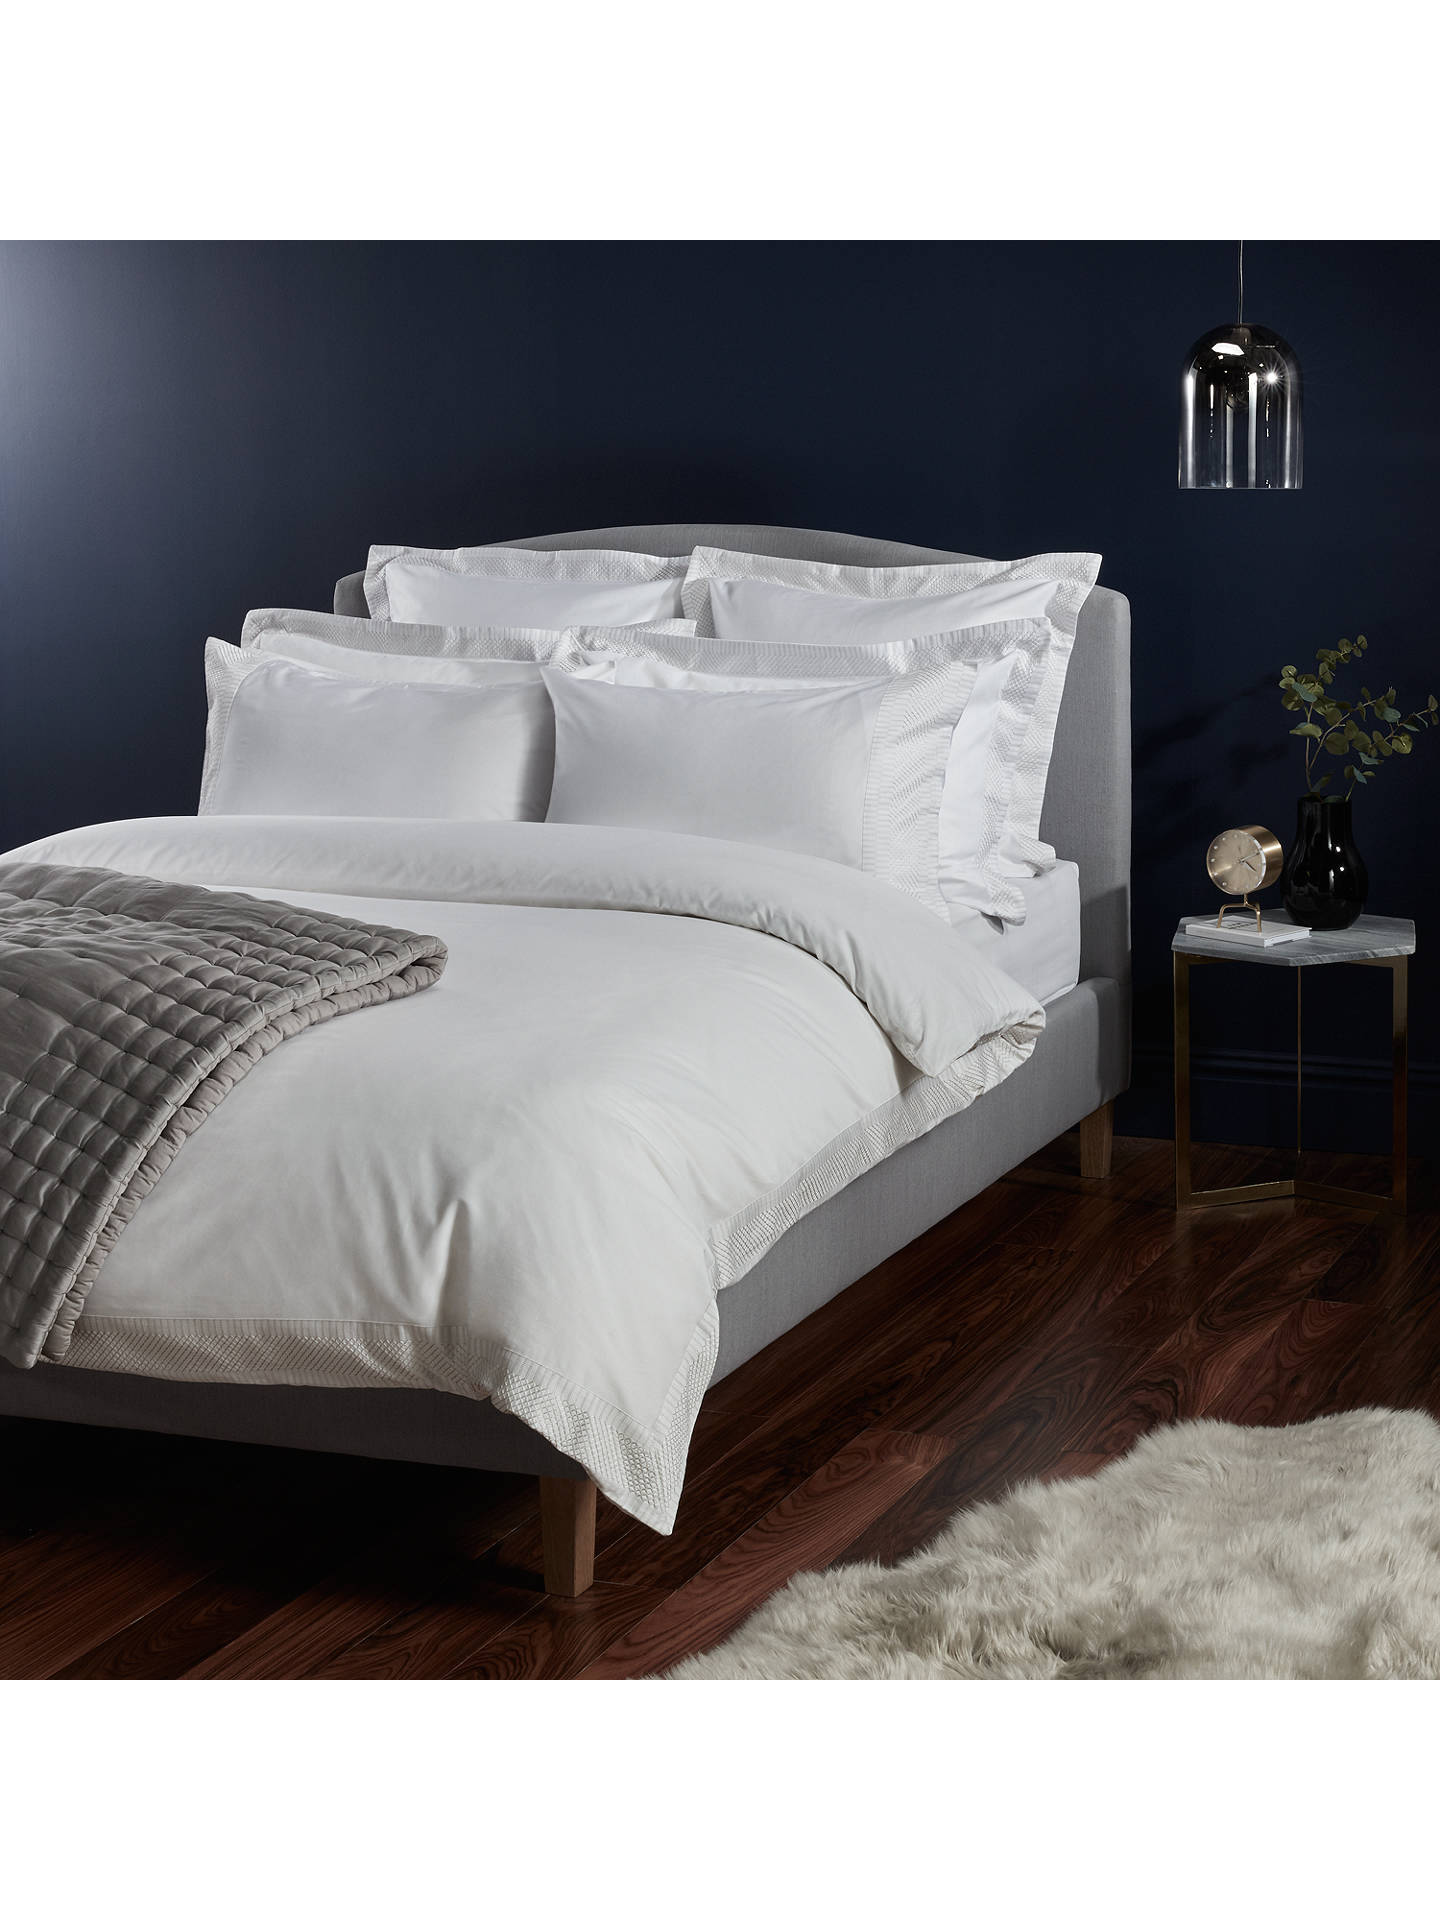 john lewis partners soft and silky treviso cotton. Black Bedroom Furniture Sets. Home Design Ideas